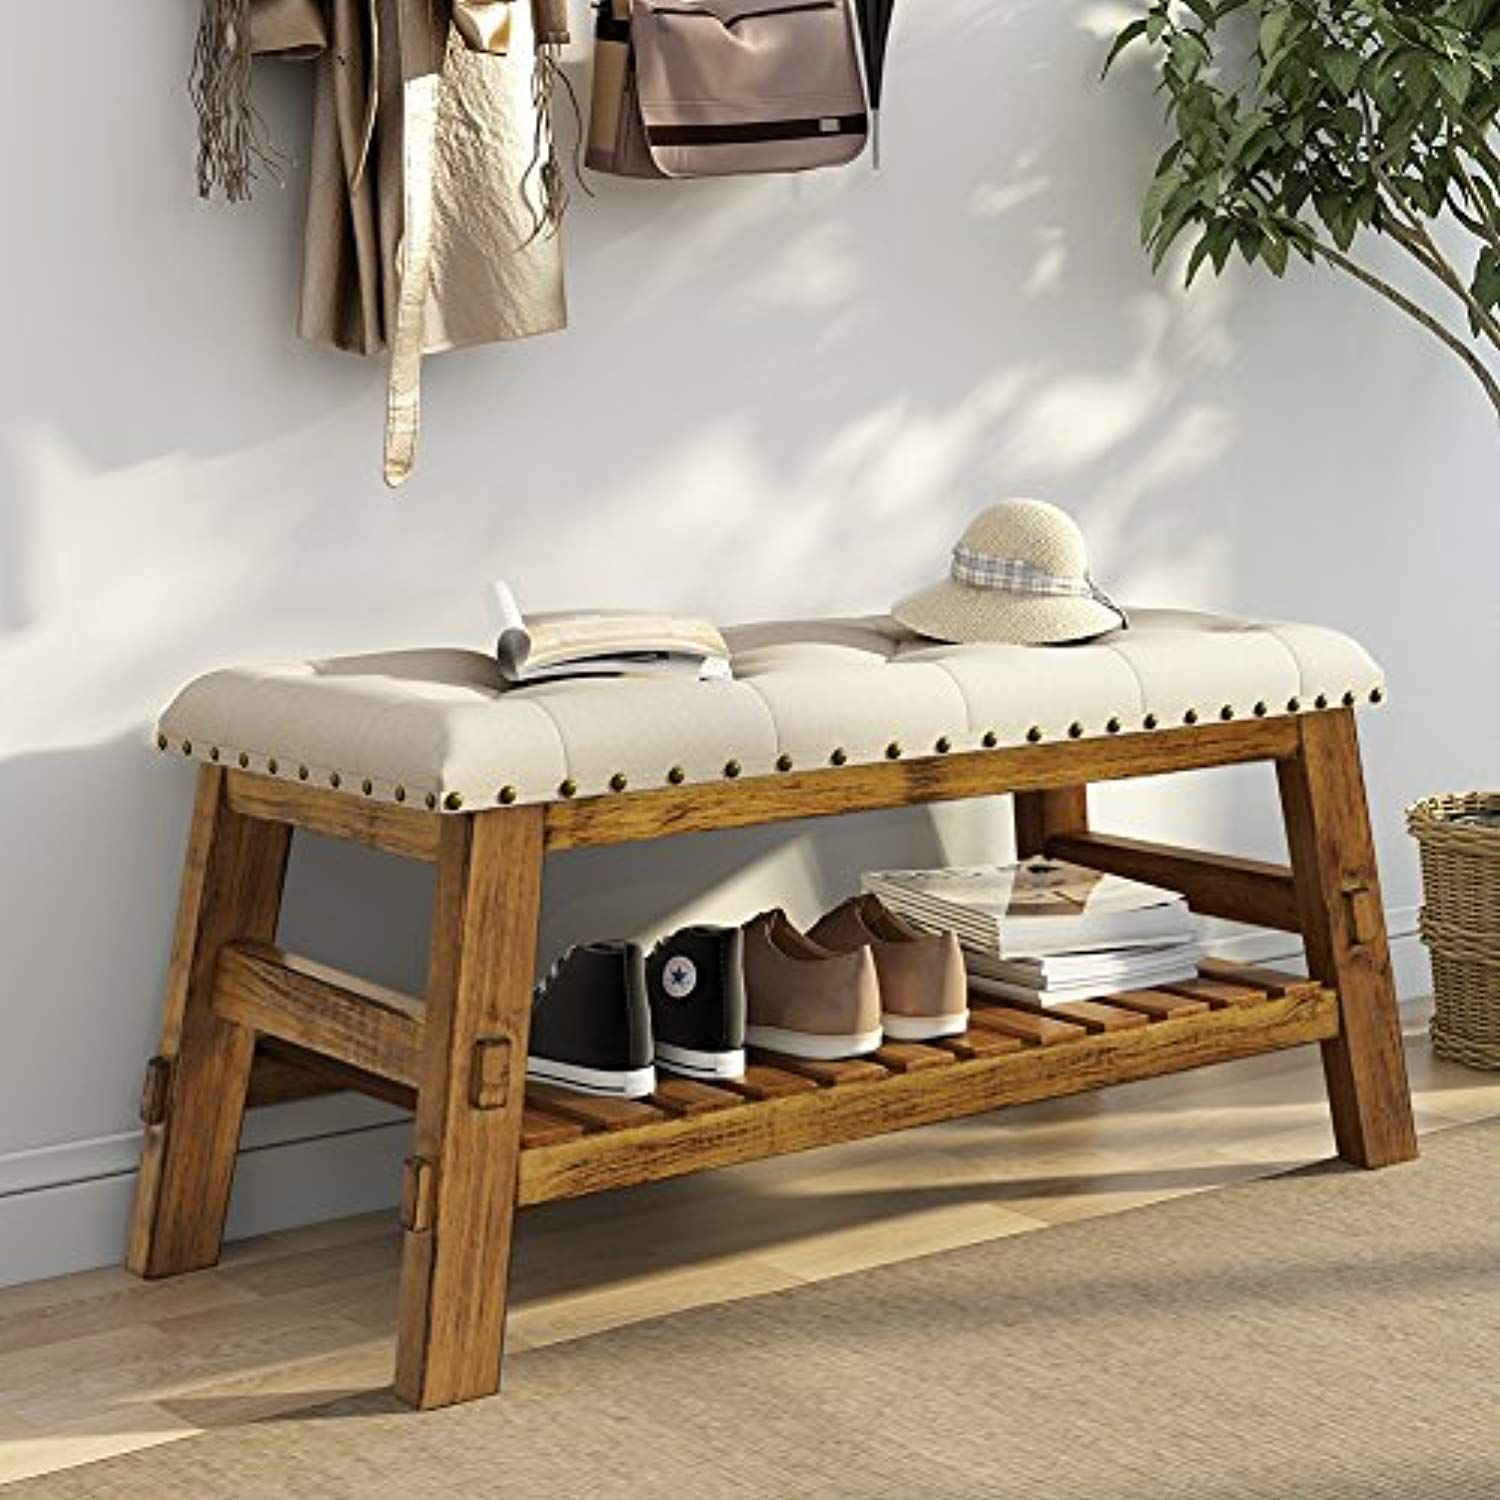 Pleasant 40 Entryway Storage Bench Little Tree Shoe Bed Bench With Ncnpc Chair Design For Home Ncnpcorg